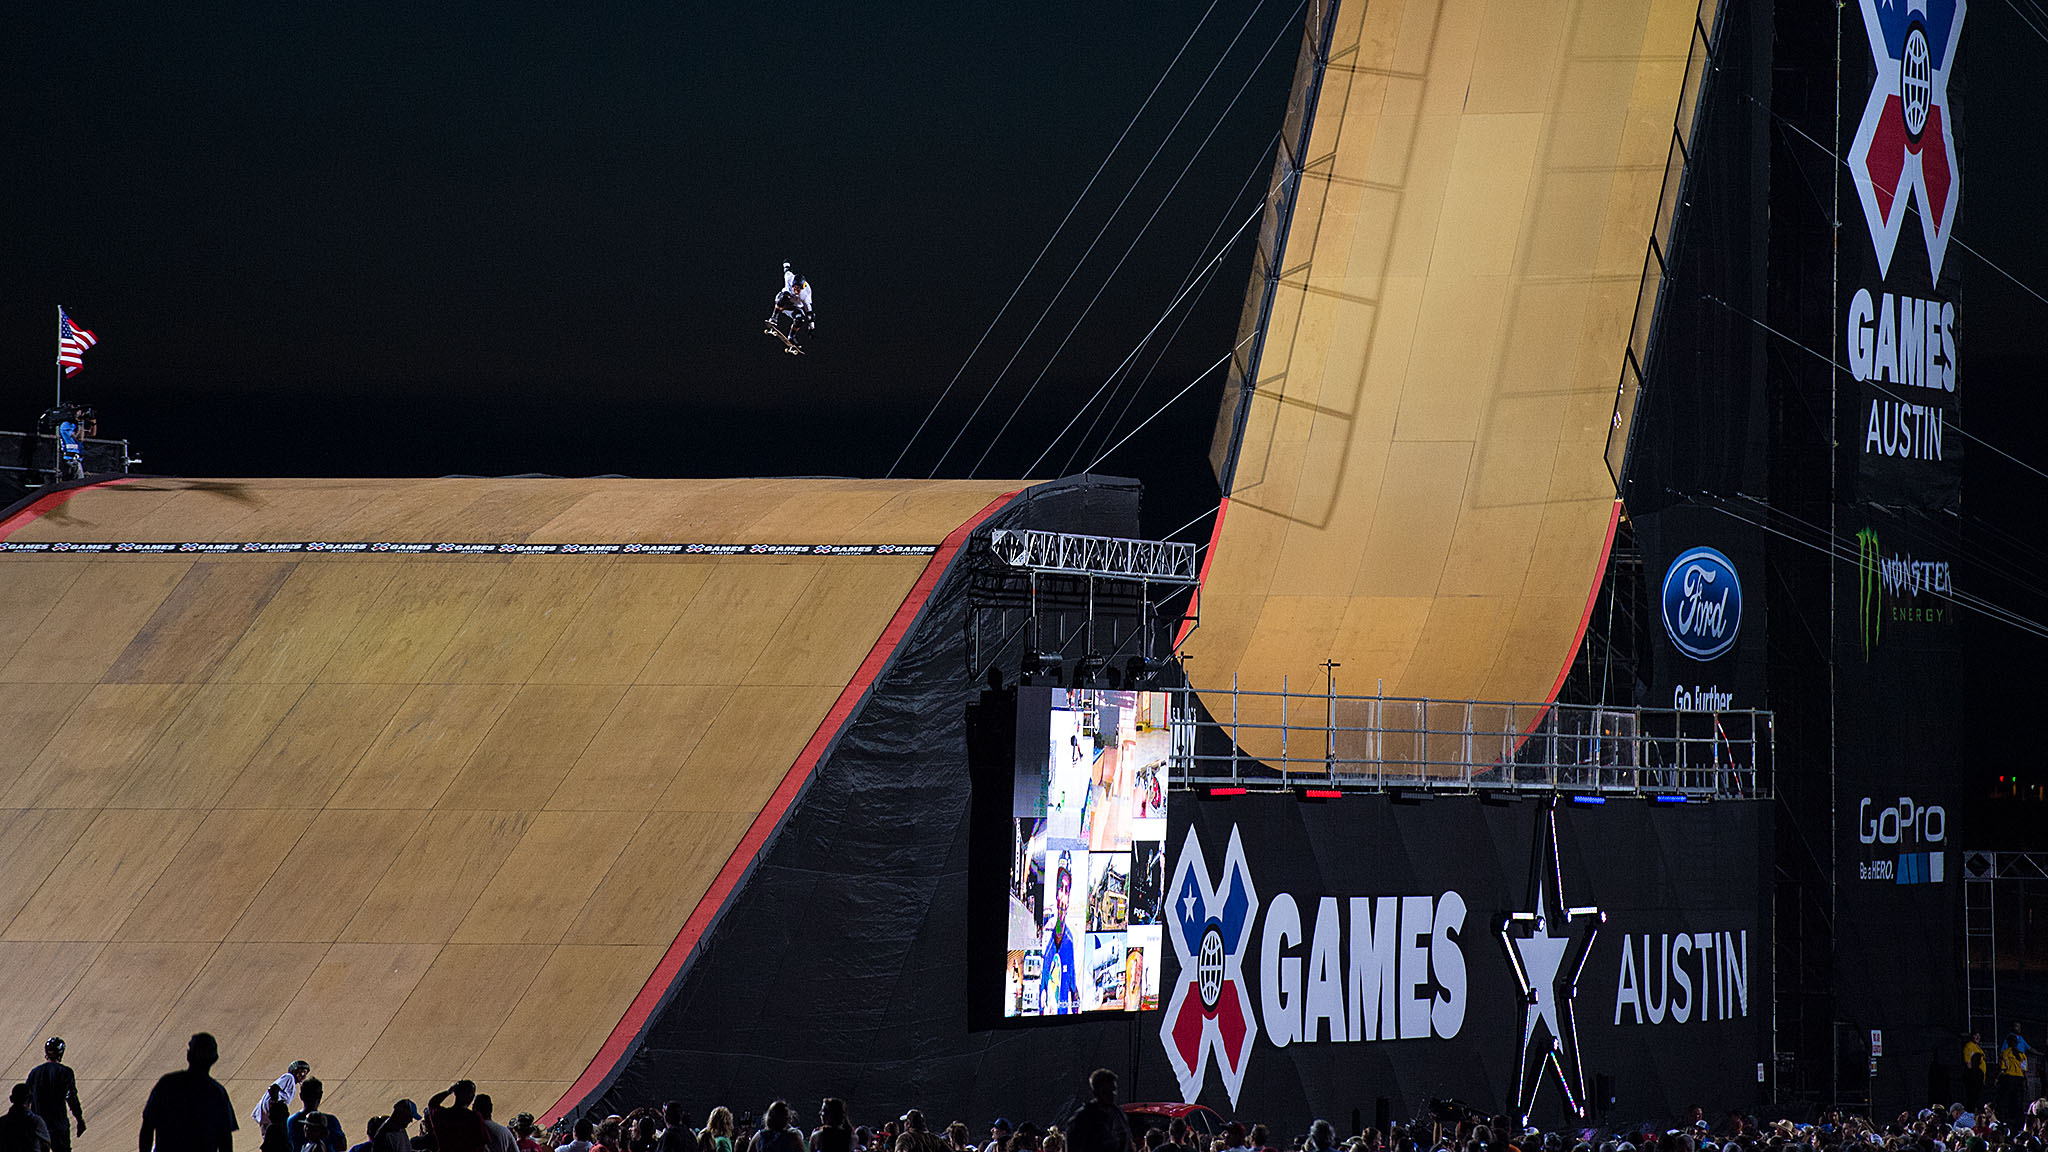 Tom Schaar won Skateboard Big Air in Austin and became the youngest athlete to do so.